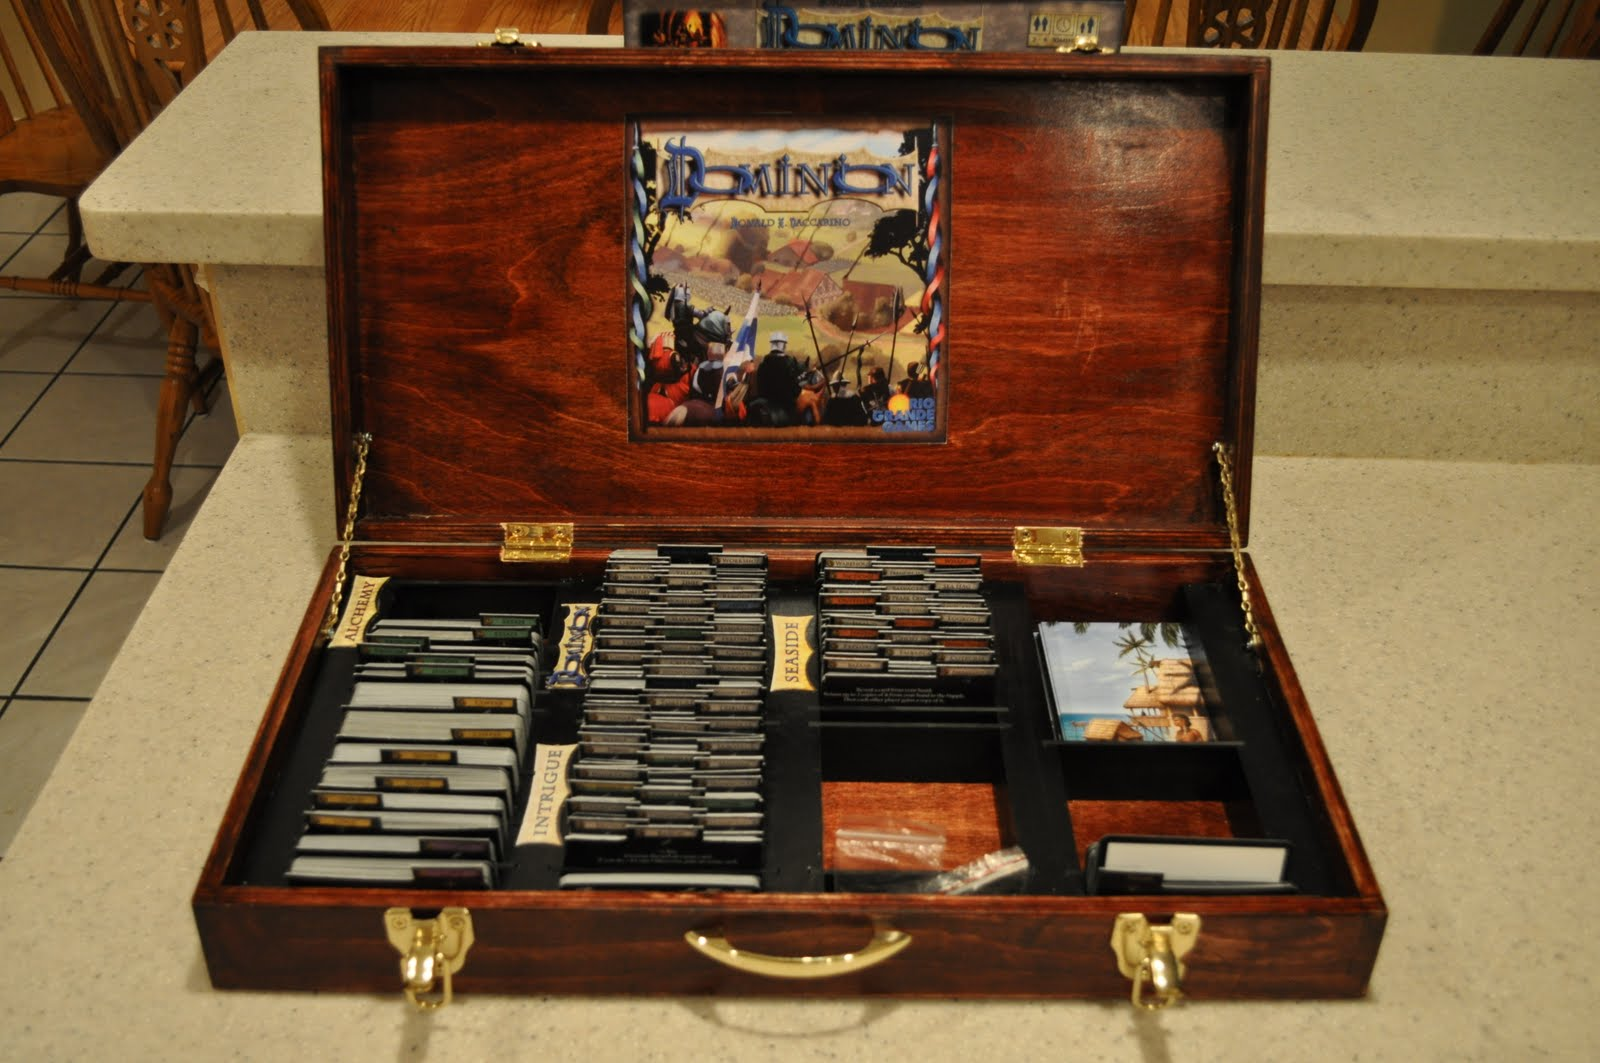 Adventures in board gaming dominion never looked so good and sexy furniture craftsman and bgg member wade ashton recently debuted his treasure chest inspired wooden dominion case as a prototype the case features wooden pronofoot35fo Choice Image